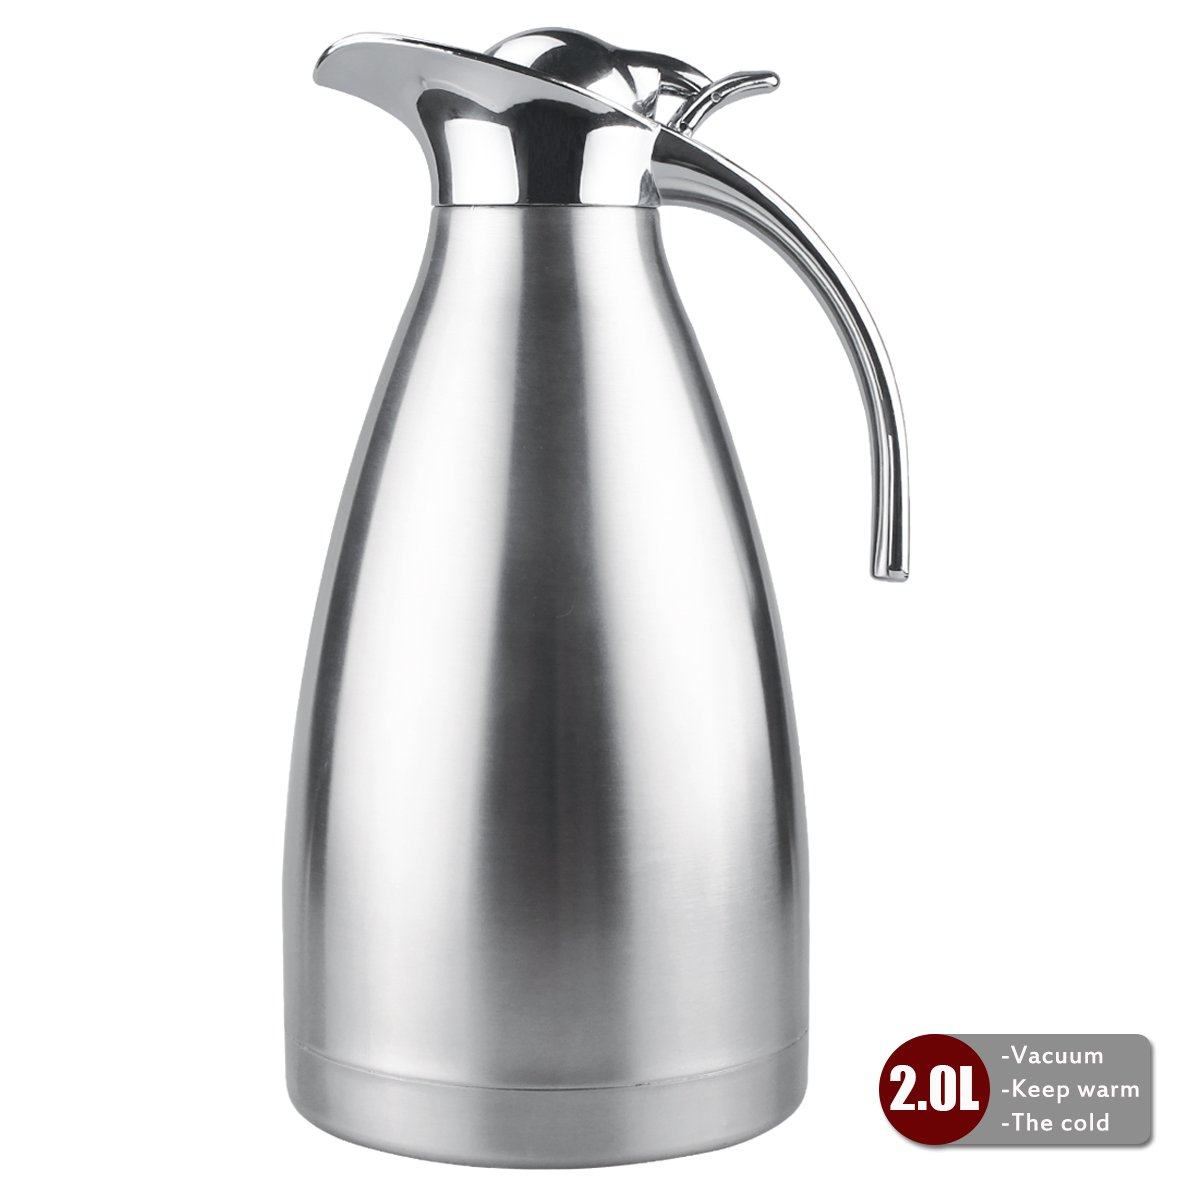 Thermal Carafe Stainless Steel Double Wall Vacuum Insulated 68 Oz Large Capacity Tea/Water Pitcher with Press Button Silver-JUNING